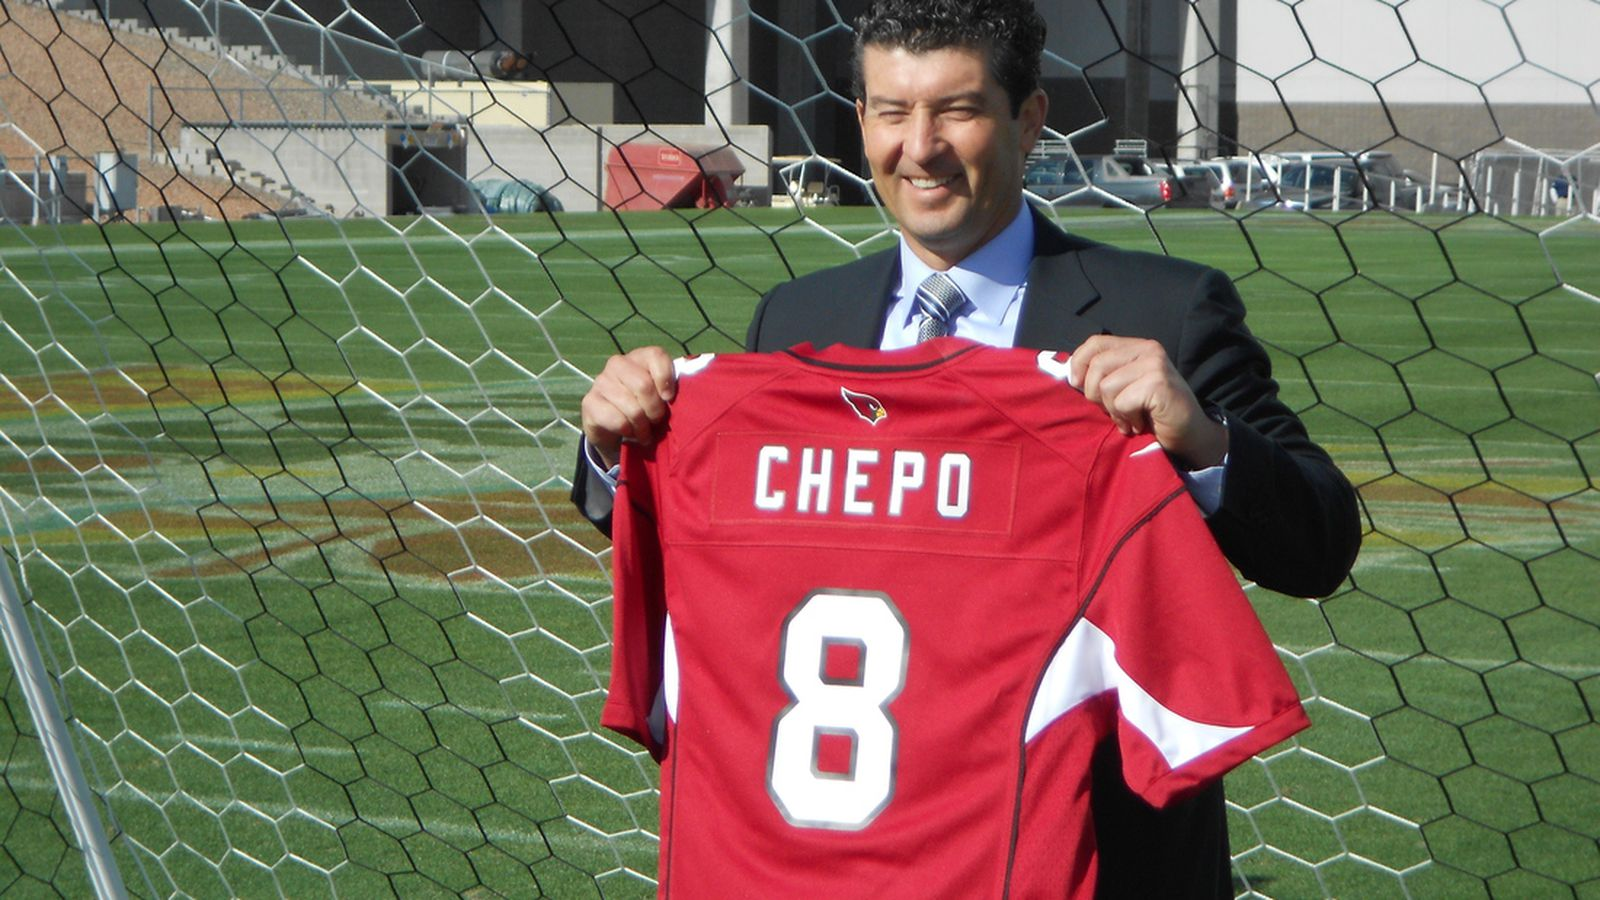 Mexico Vs. Denmark Soccer Friendly: 'Chepo' De La Torre